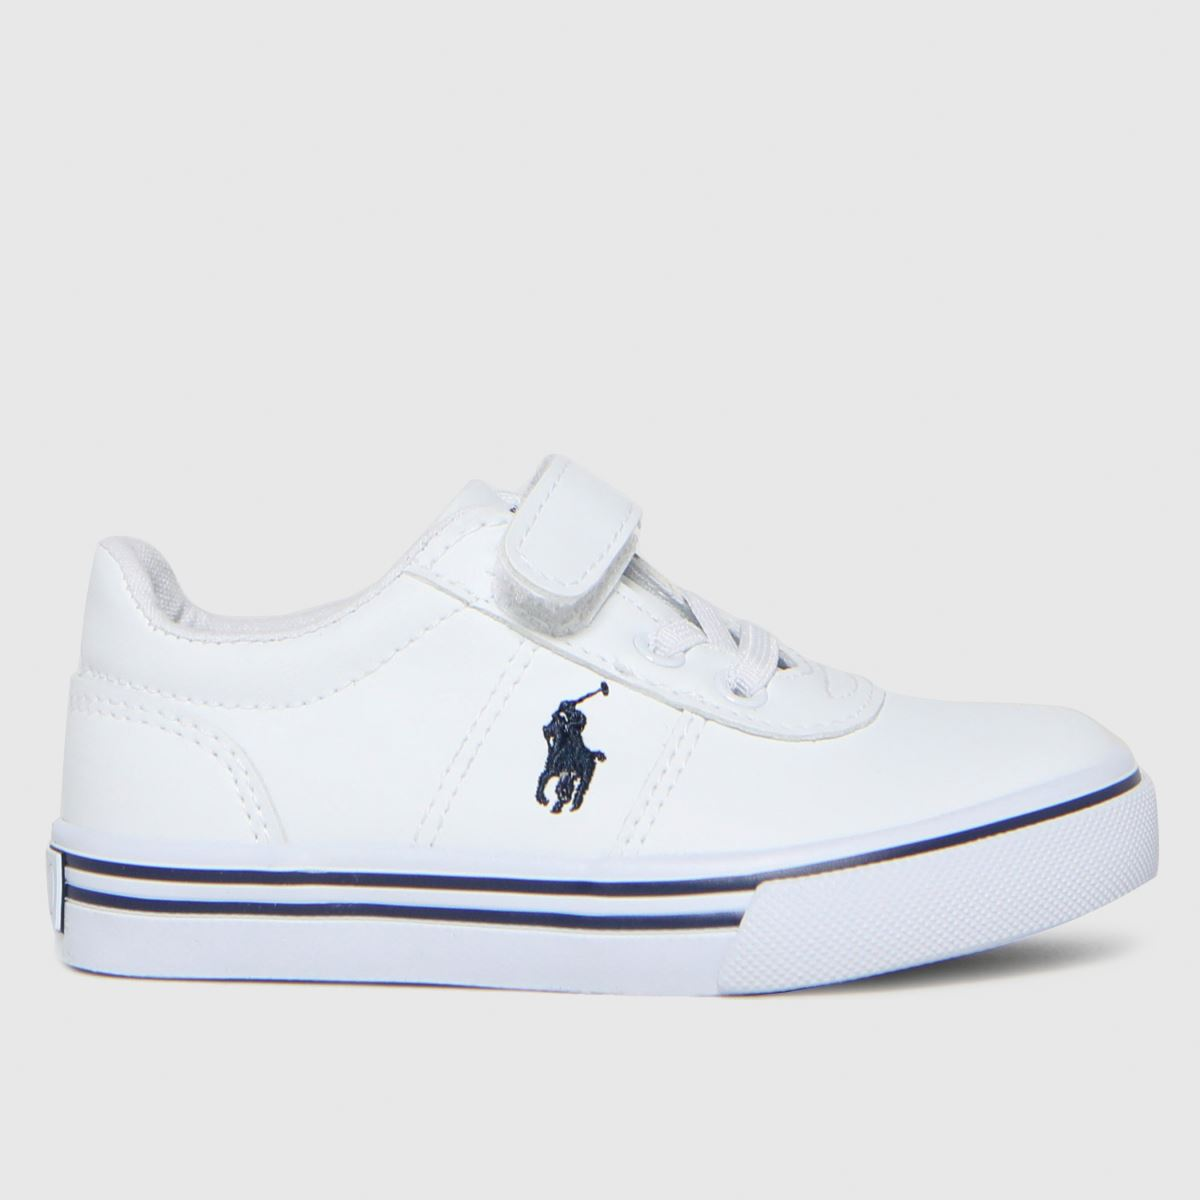 Polo Ralph Lauren White & Navy Hanford Ii Ps Trainers Toddler